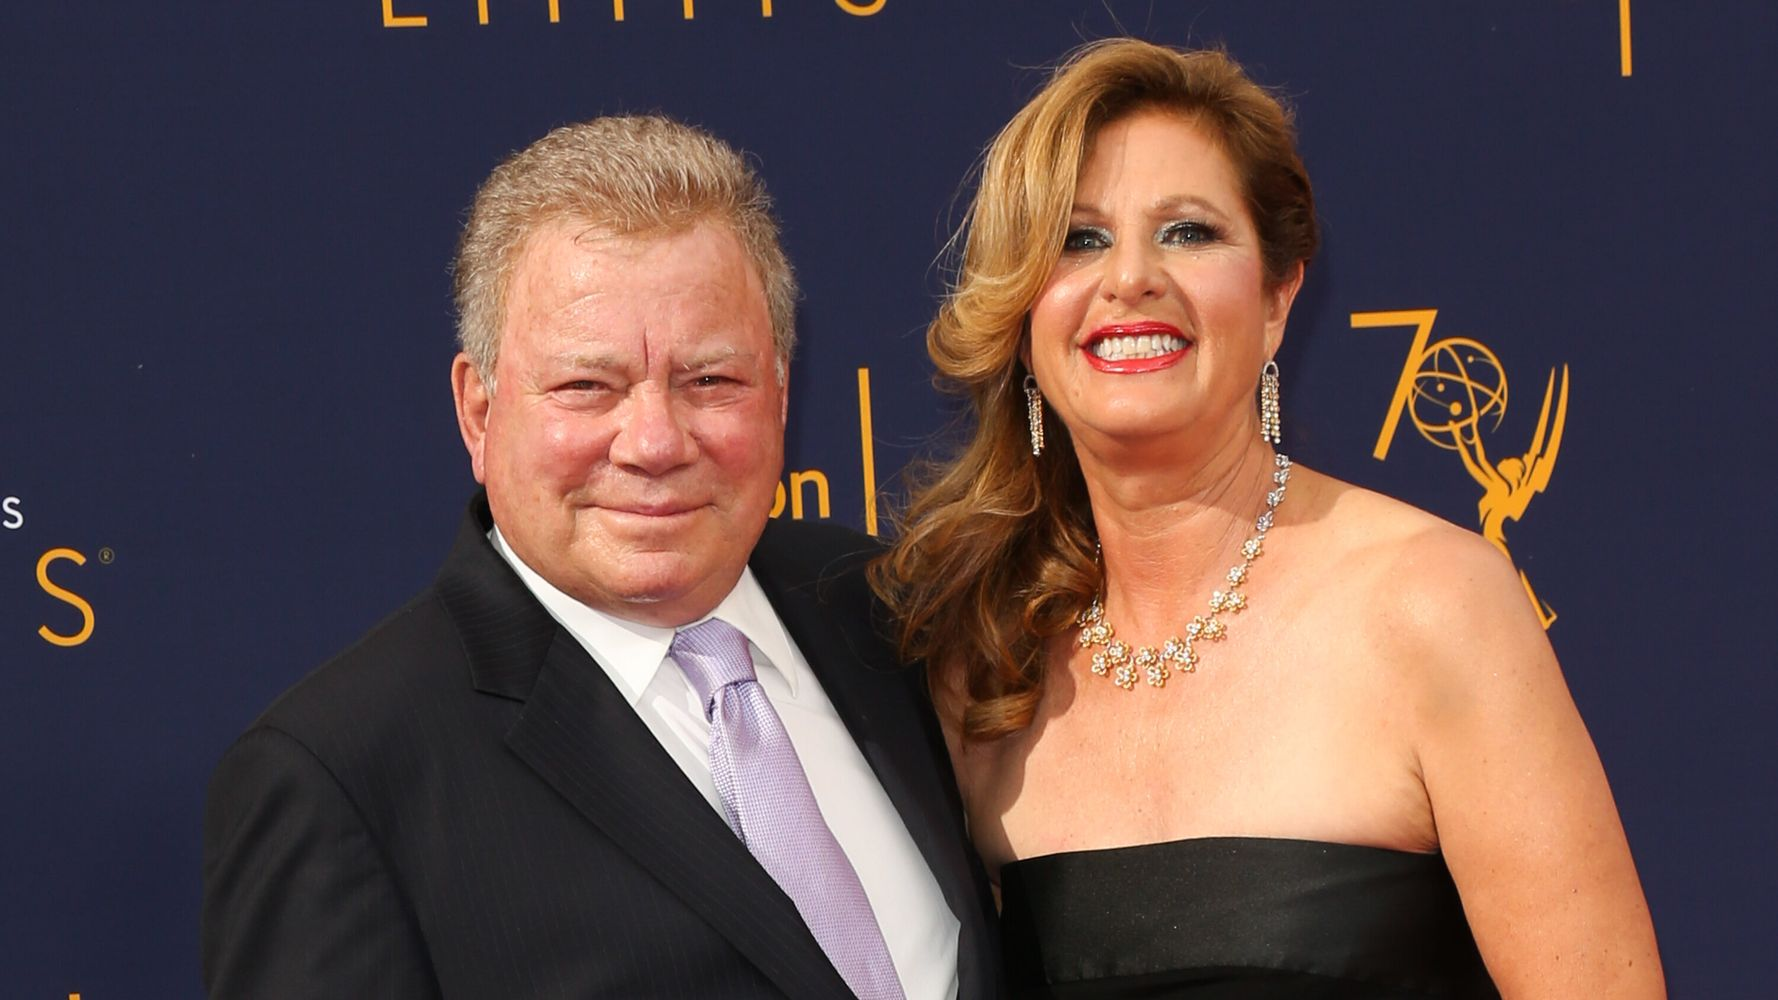 William Shatner Reportedly Files For Divorce From His Fourth Wife